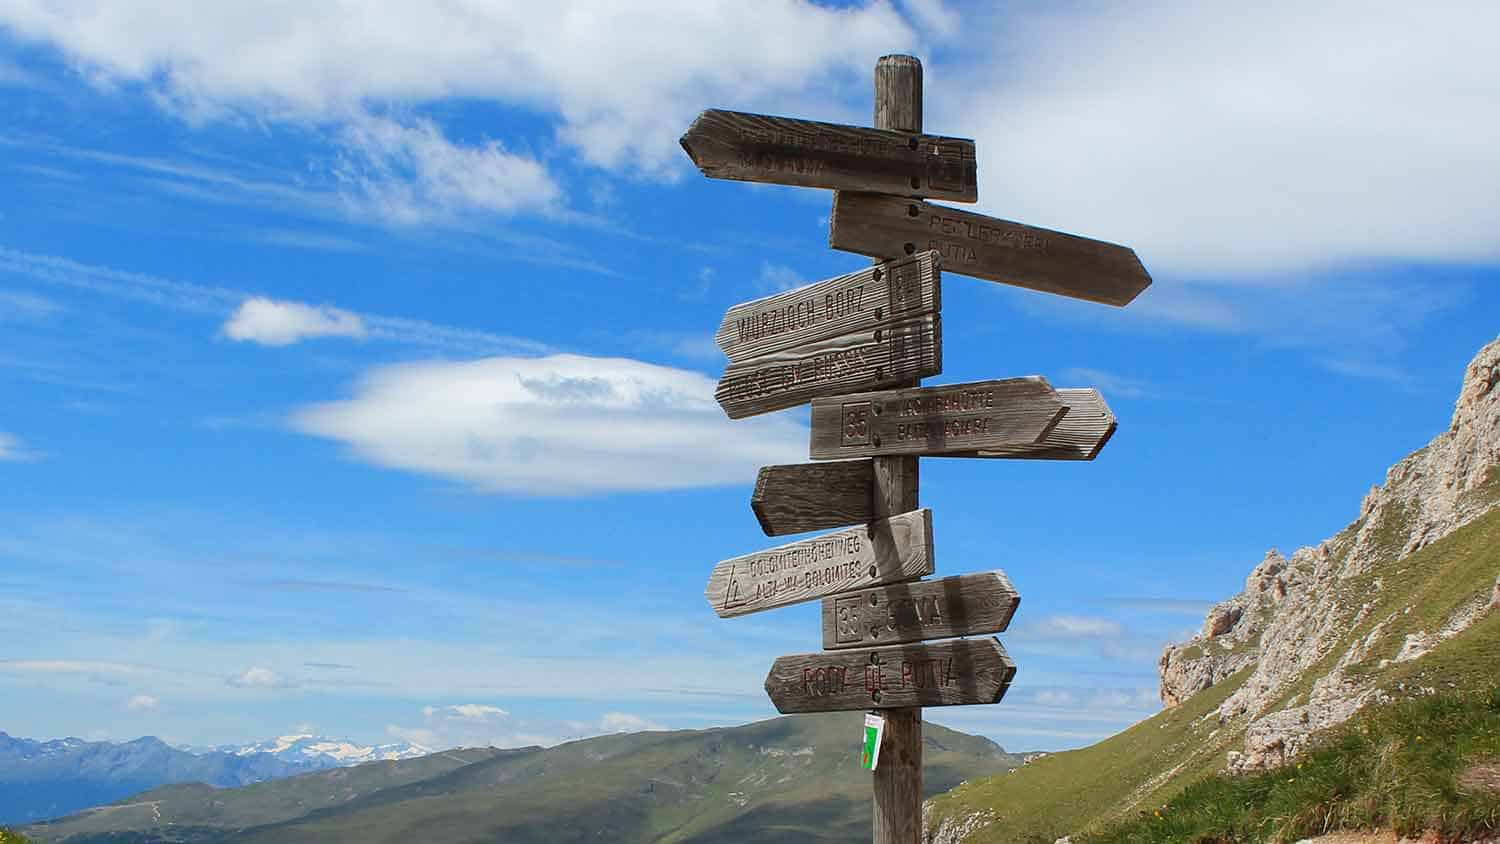 A signpost in the mountains